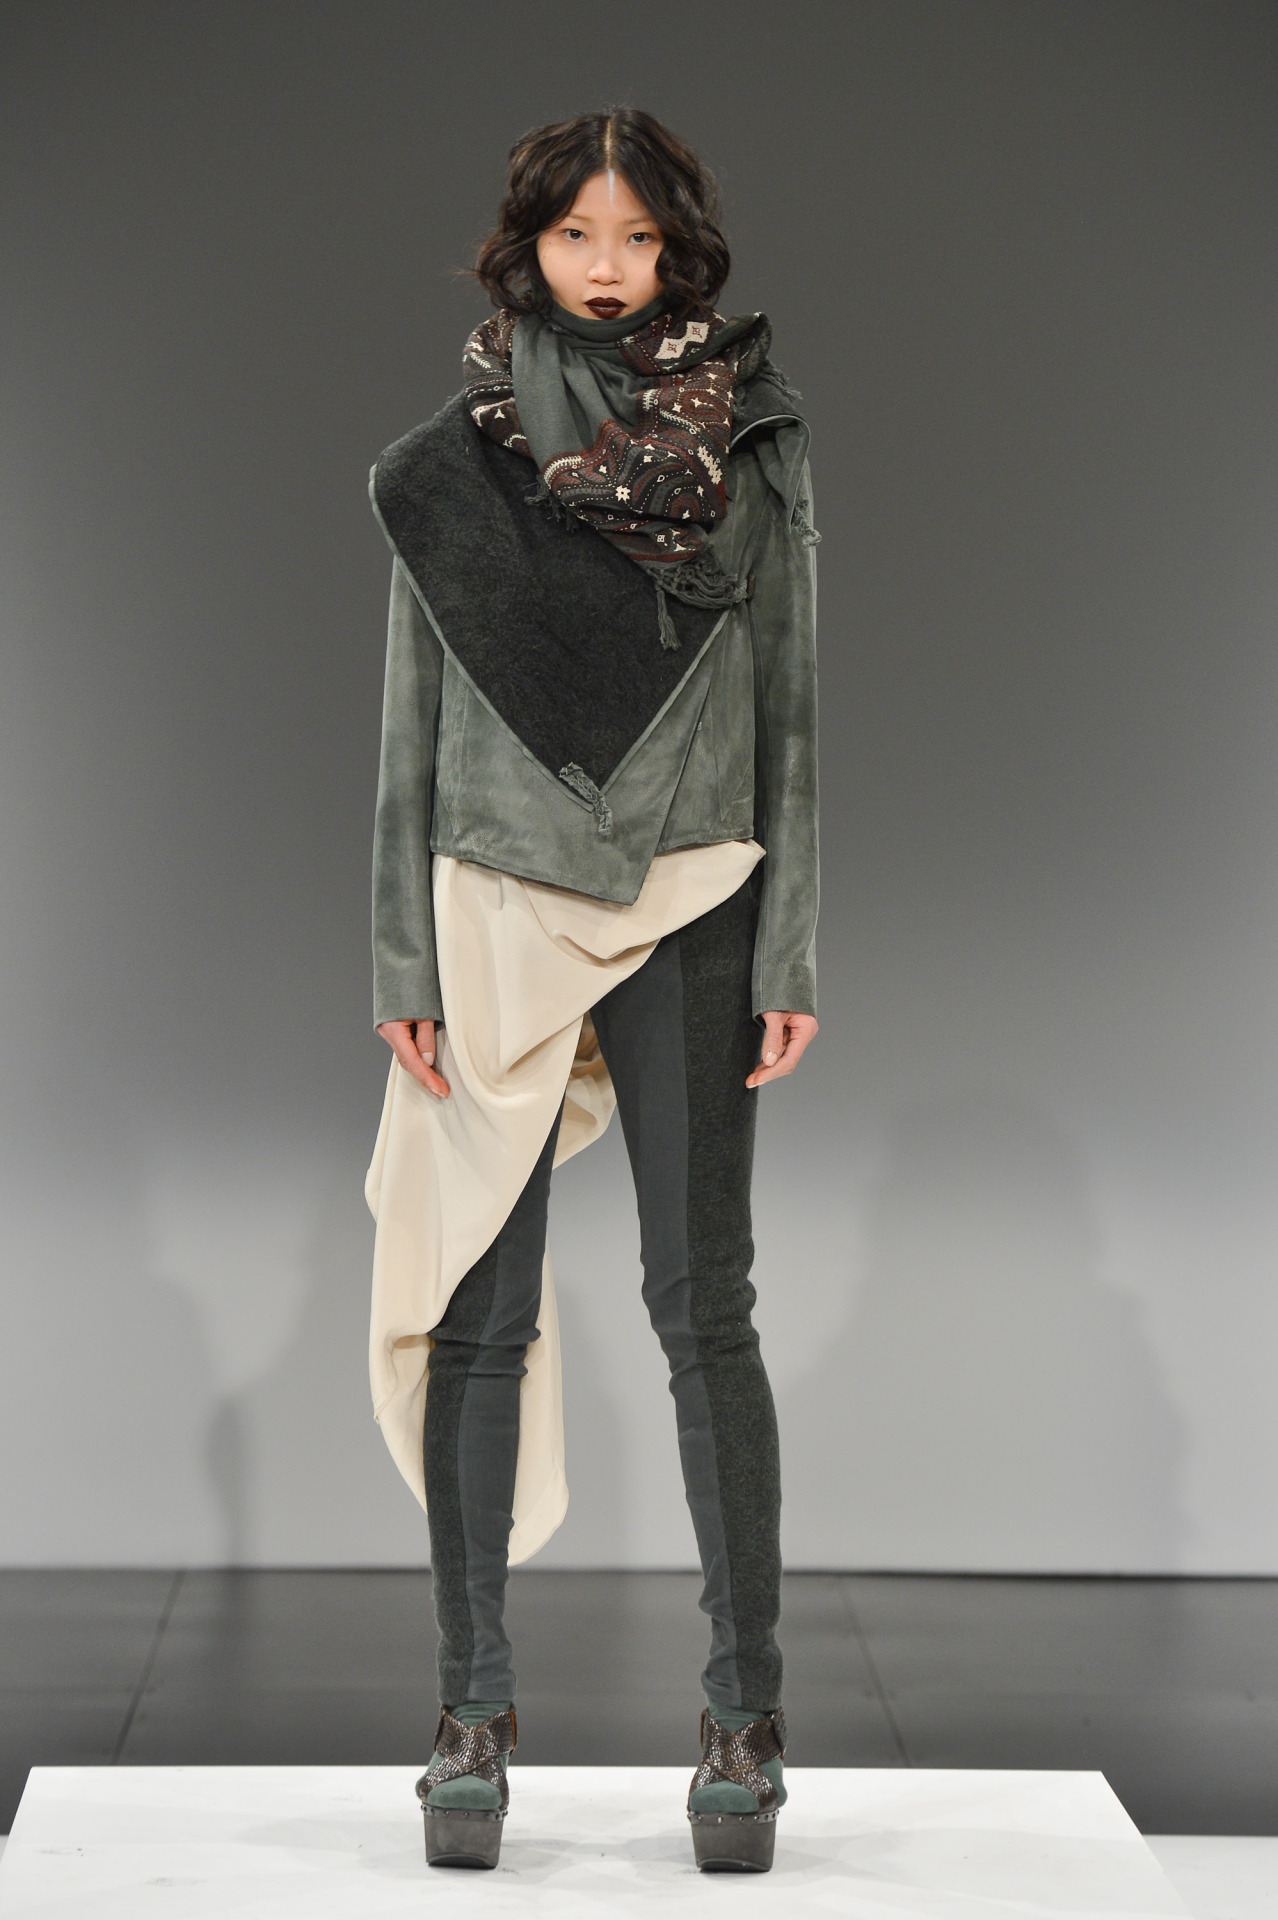 Laura Siegel at Toronto Fashion Week - Fall 2013 / Photographer: George Pimentel See the latest from Canada's capital of fashion.